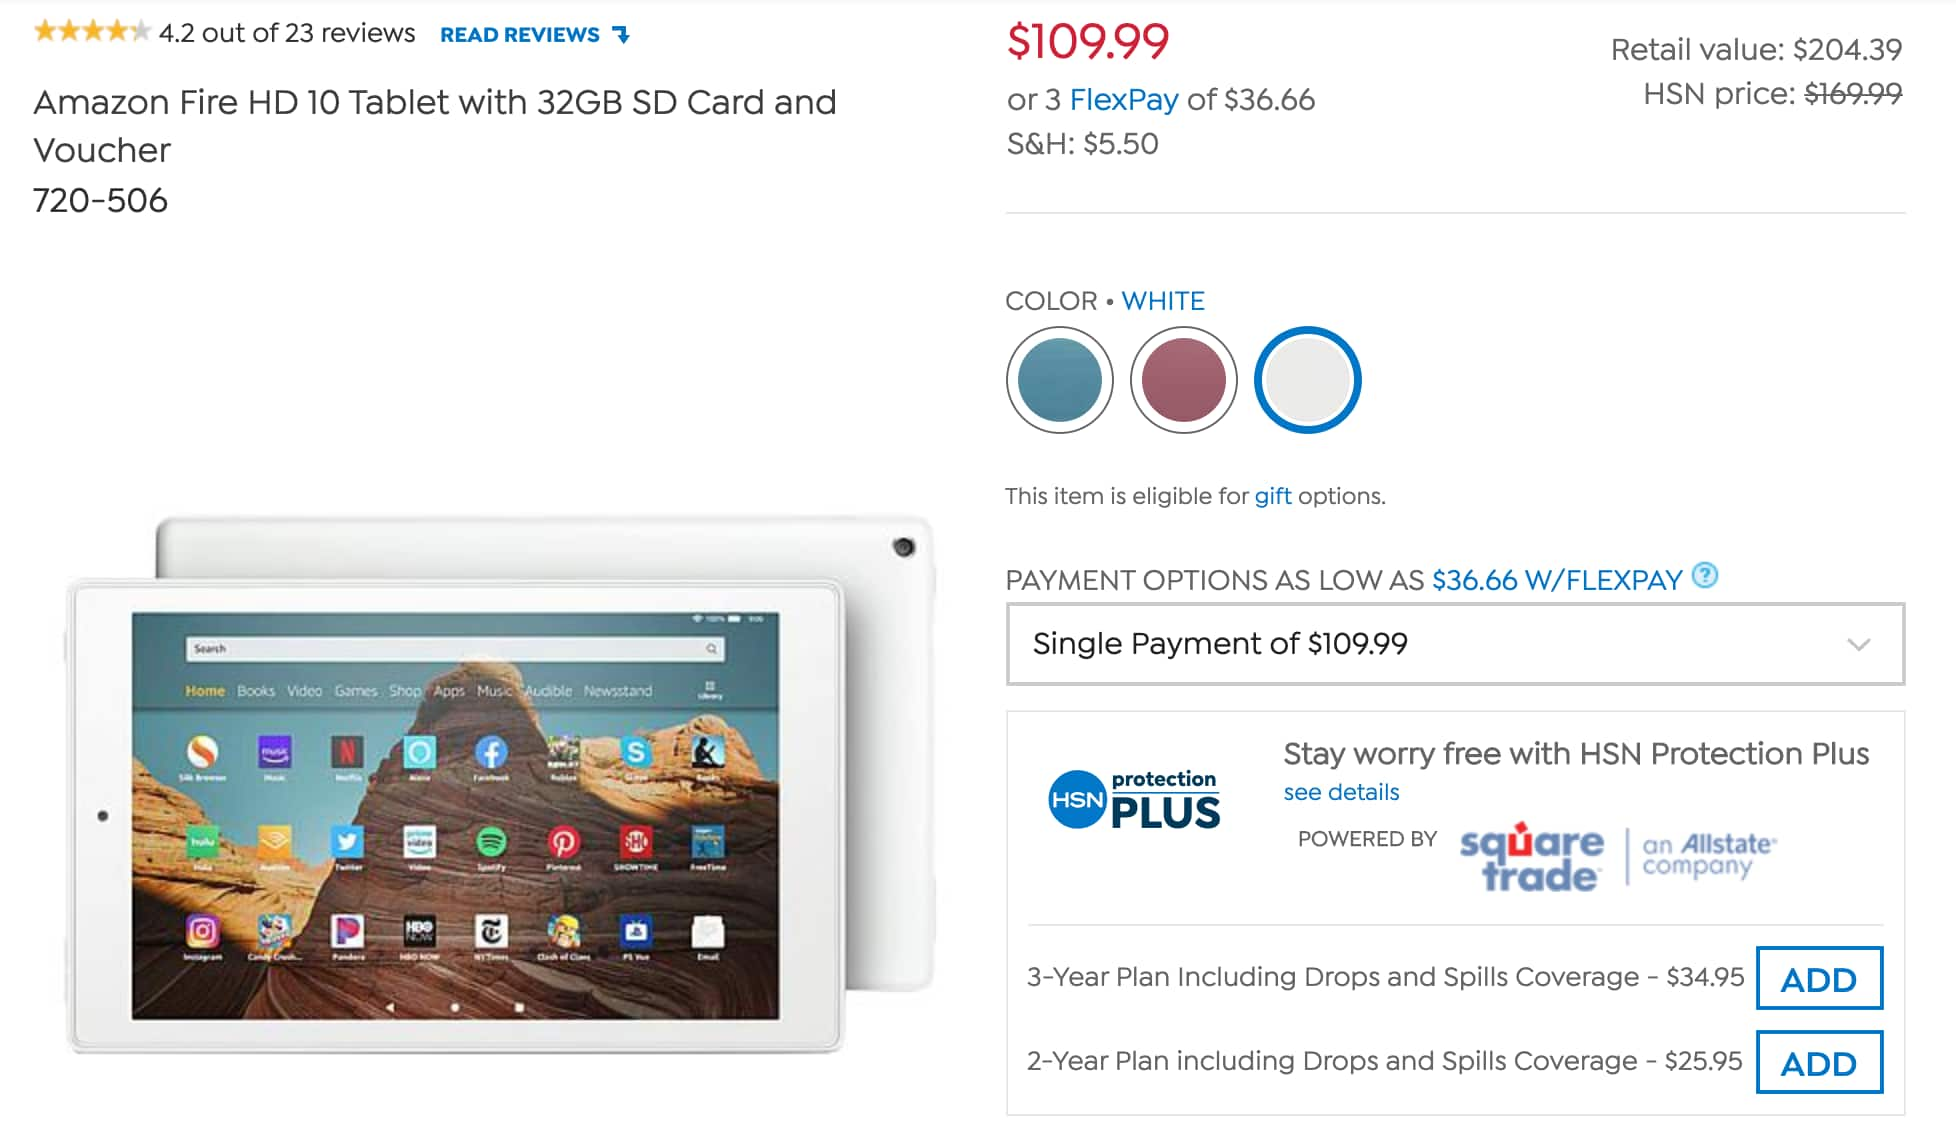 HSN: Amazon Fire HD 10 Tablet with 32GB SD Card and Voucher, shipping $5.50 $109.99